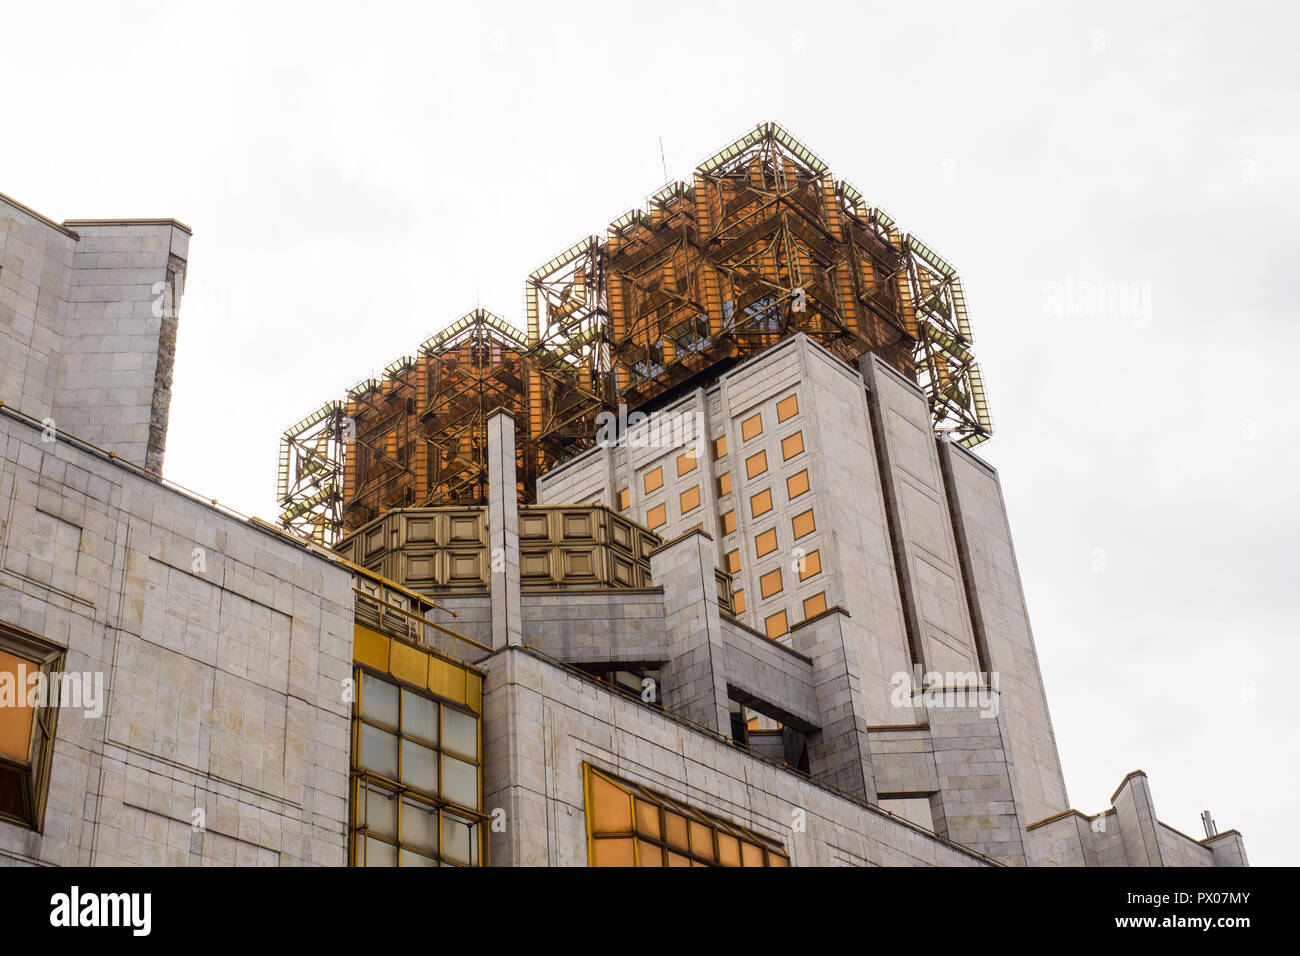 The building of the Presidium of the Russian Academy of Sciences. - Stock Image